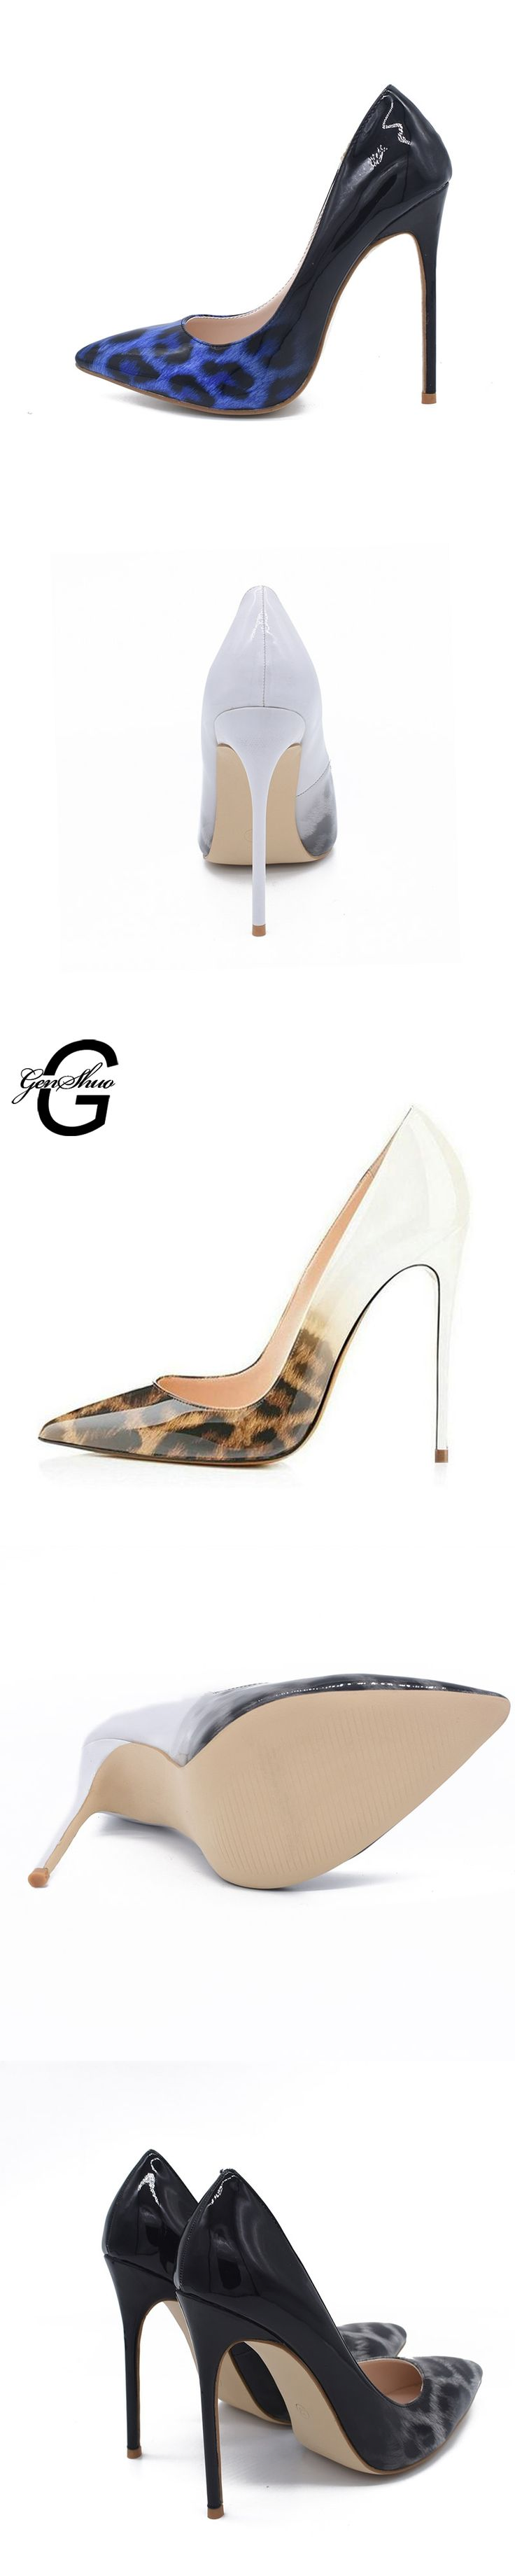 GENSHUO Sexy Leopard Pattern Stiletto High Heels Shoes Women Pumps Pointed Toe Woman Shoes Heels 8 10 12CM Plus Size 35-41 42